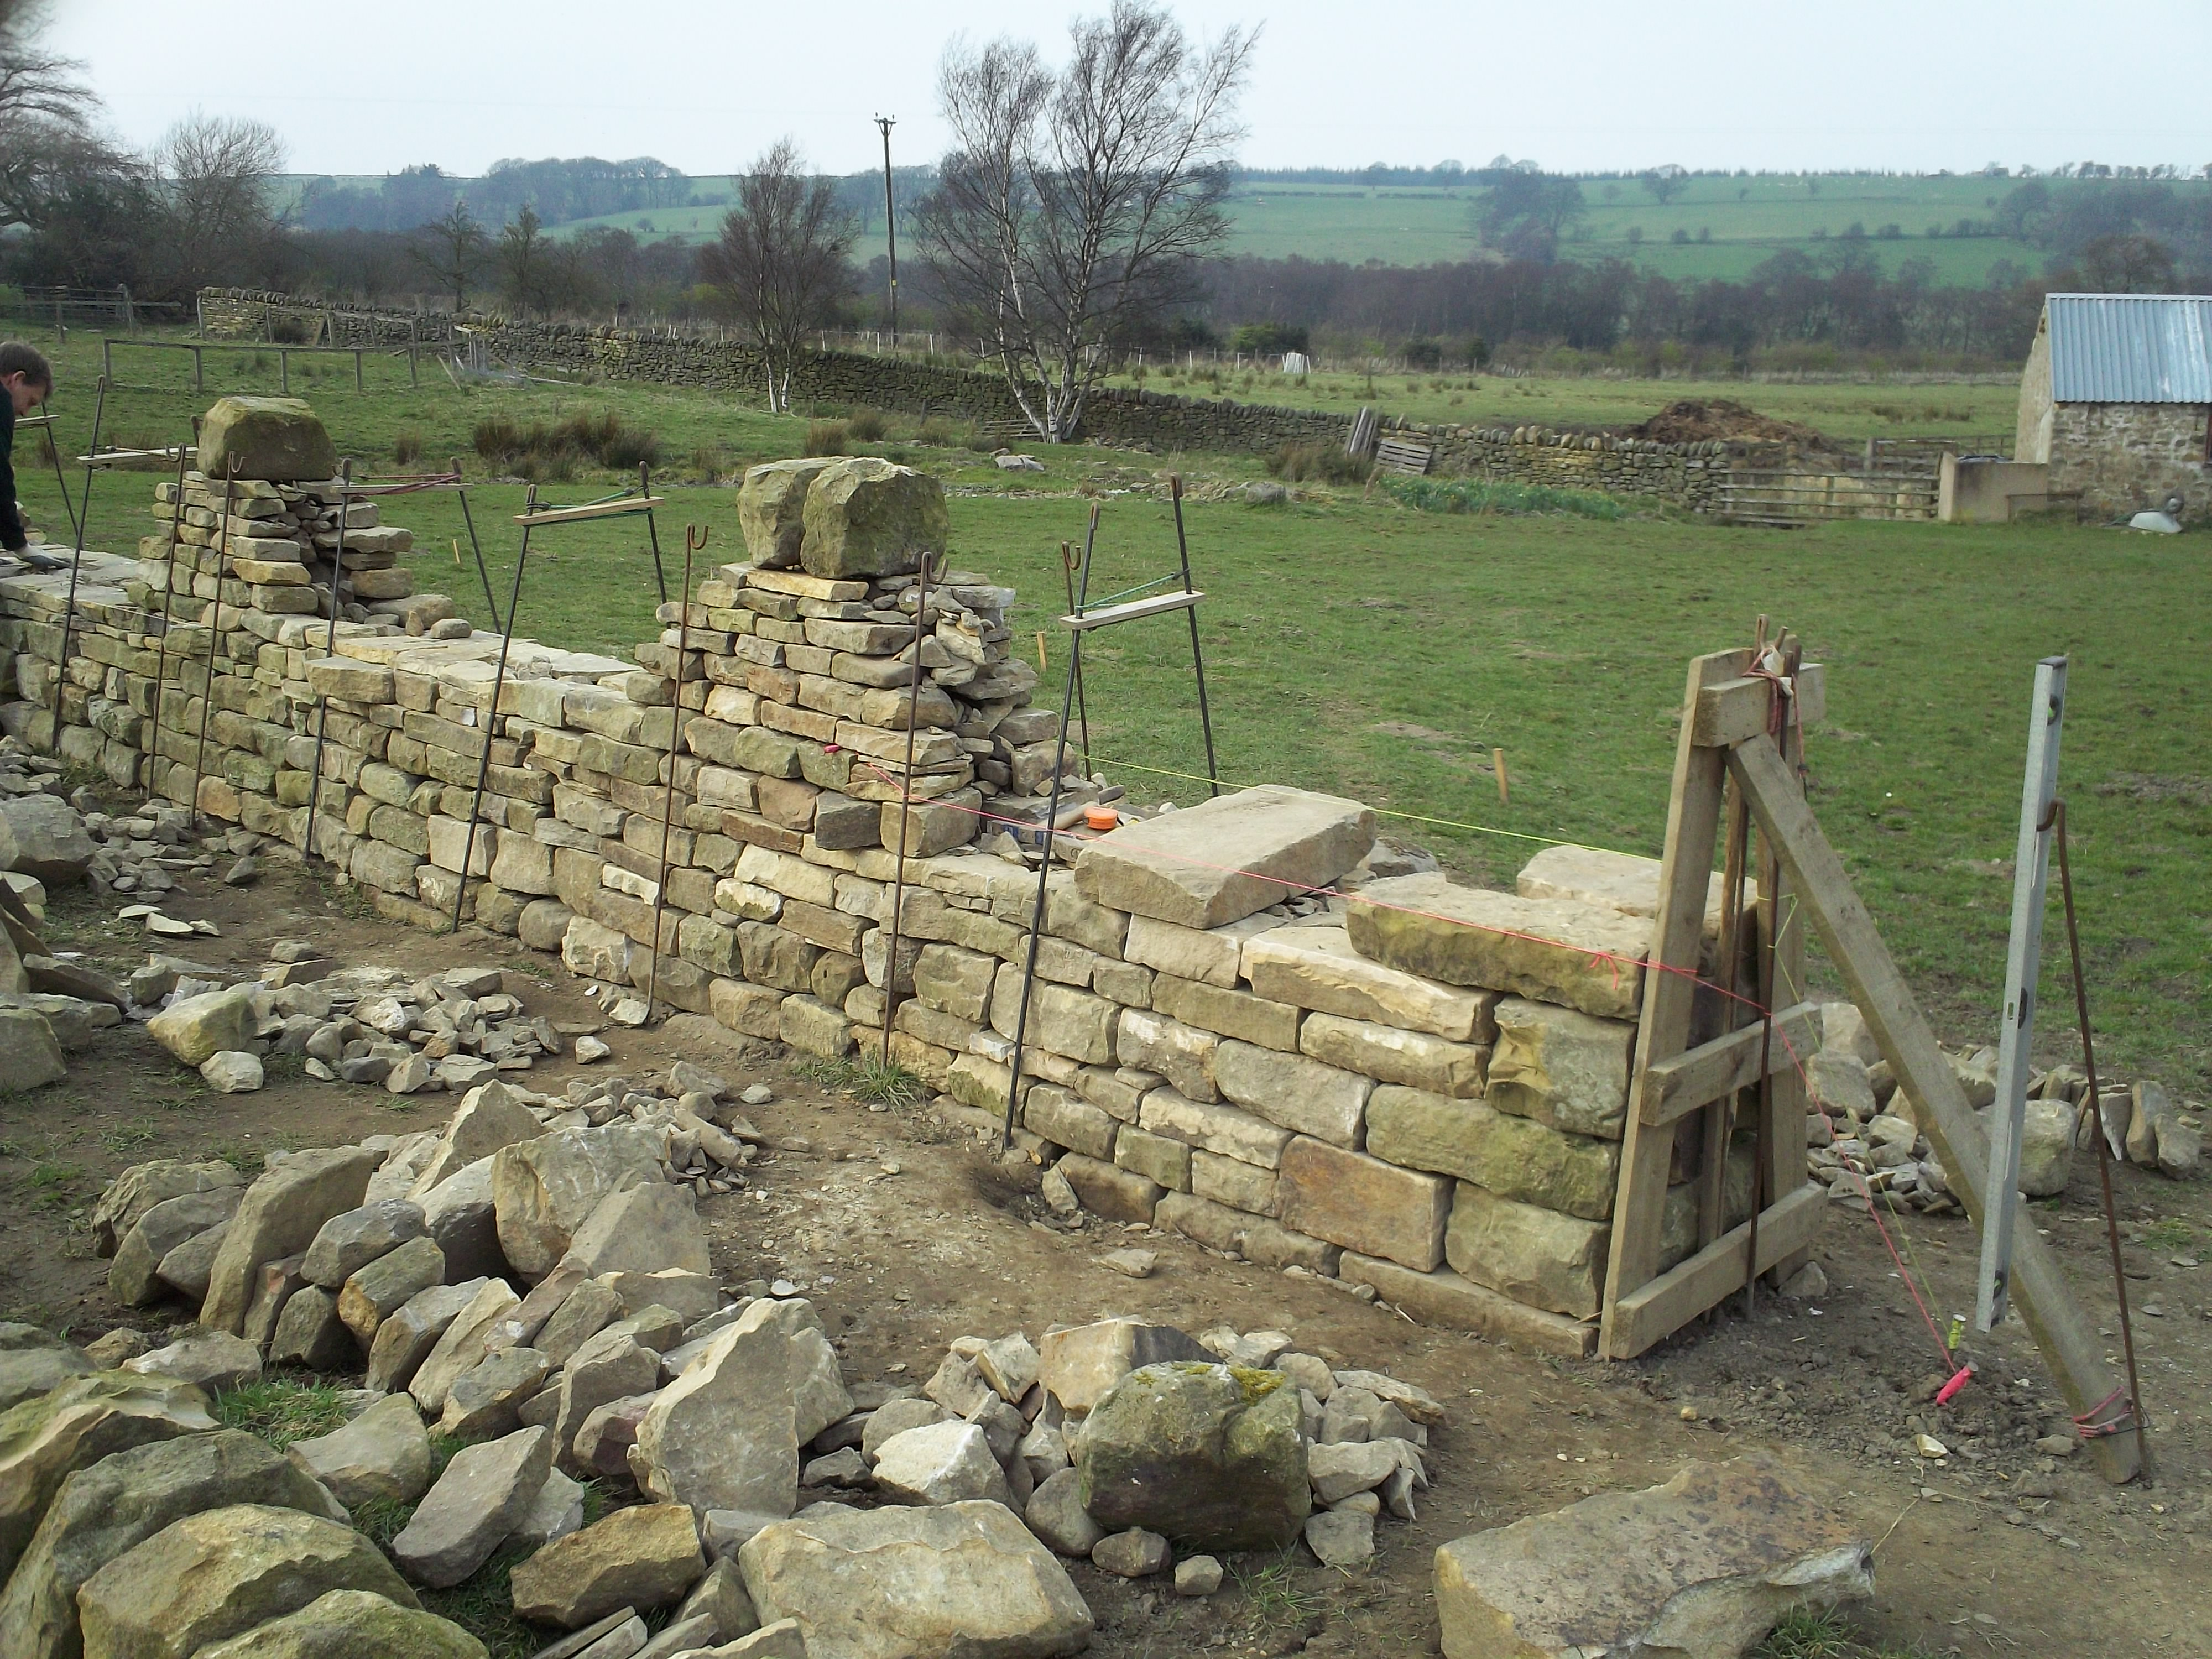 Stone Wall Construction : Clive elsdon passes lantra level dry stone walling